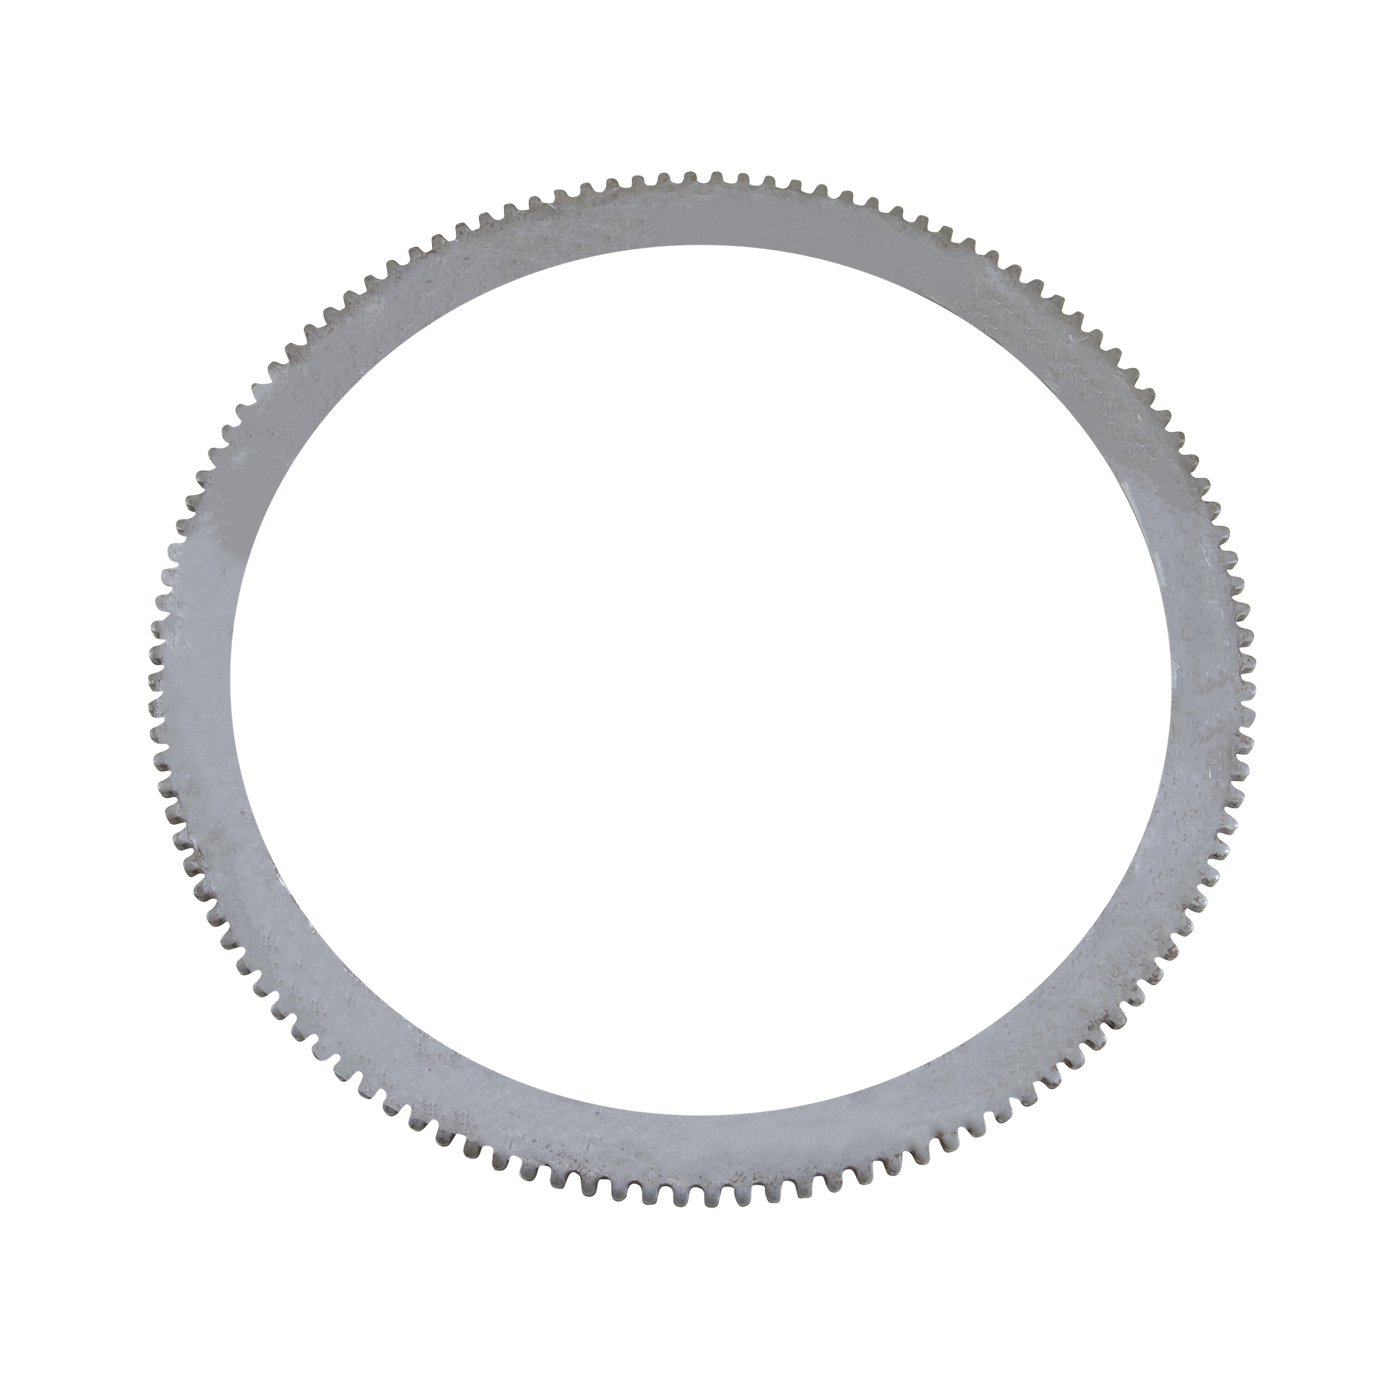 YSPABS-007 - ABS tone ring for Dana S110